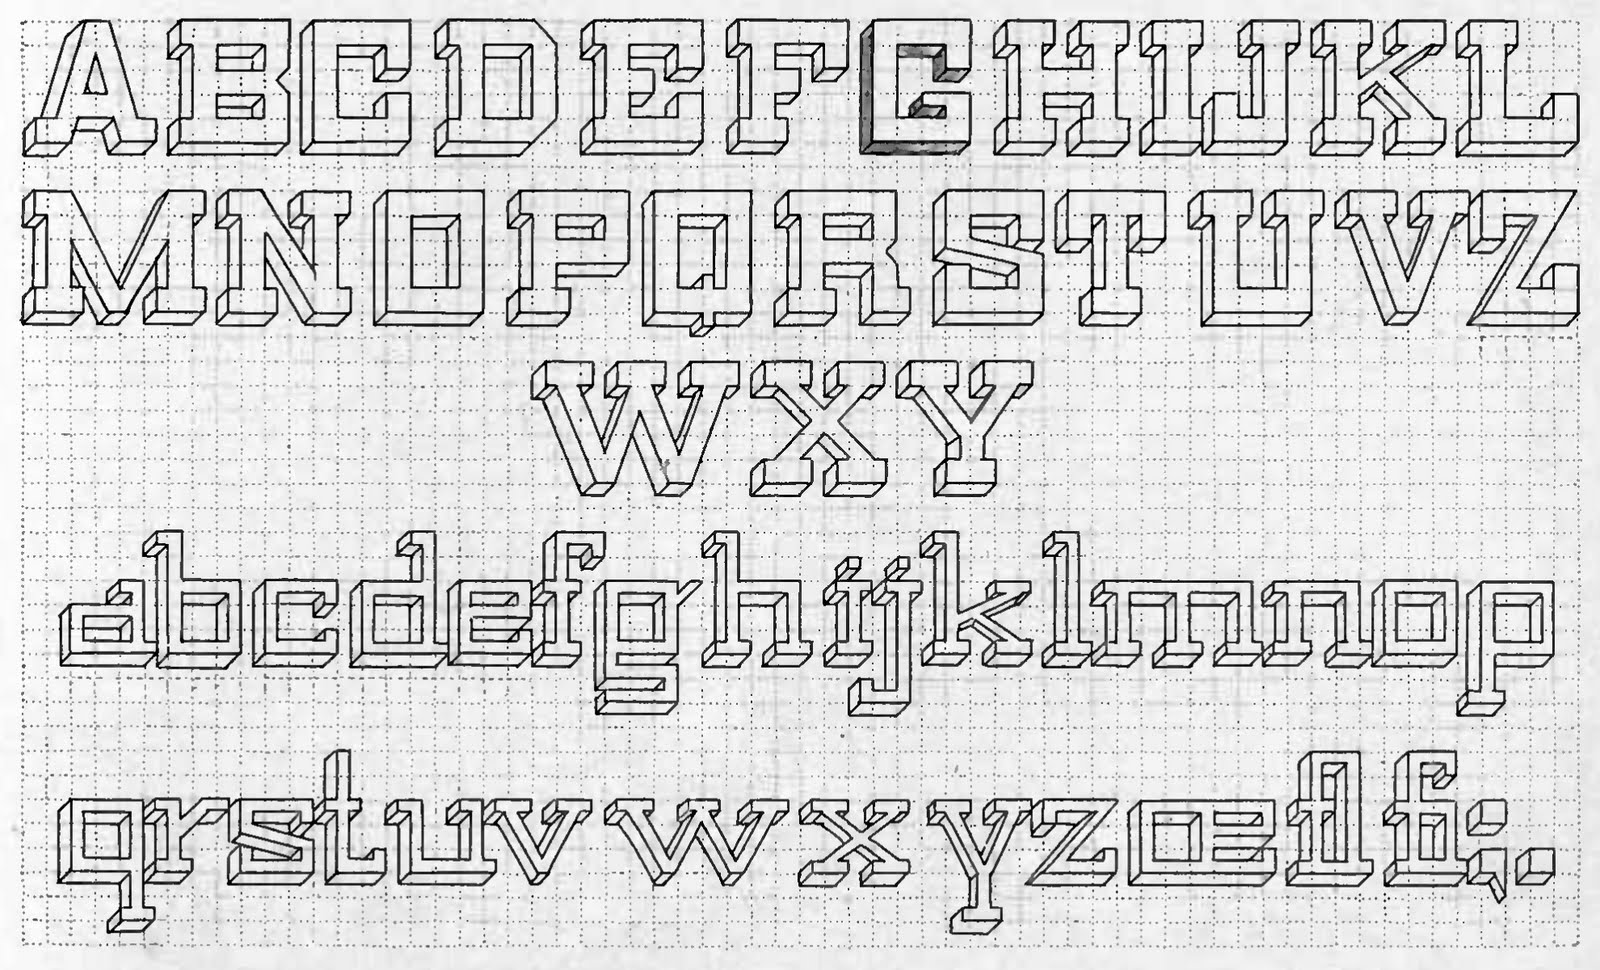 letters on grid paper - Daway.dabrowa.co